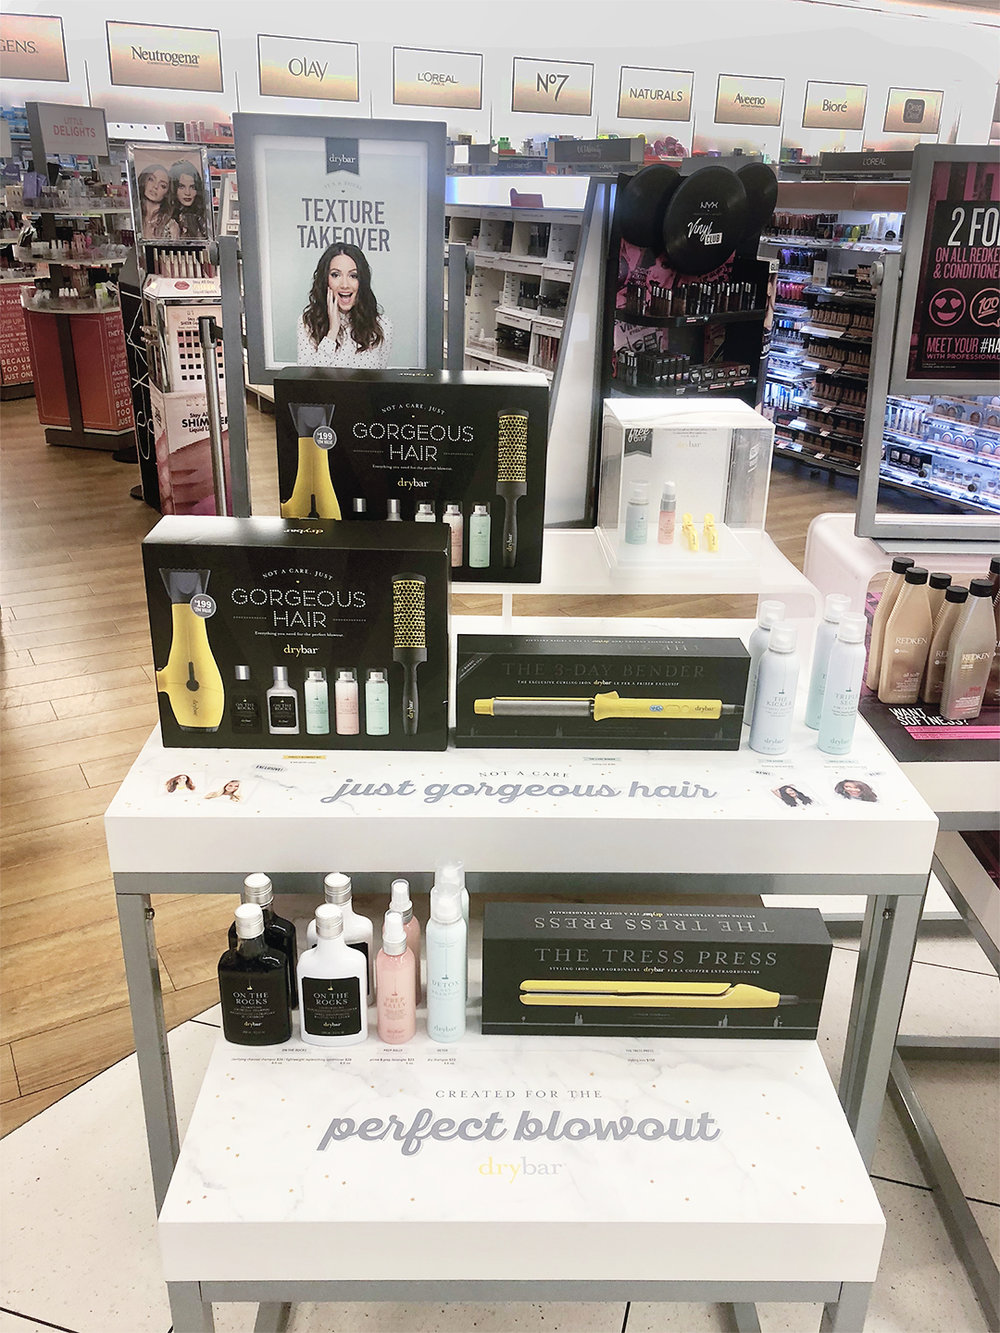 ulta texture takeover table2.jpg